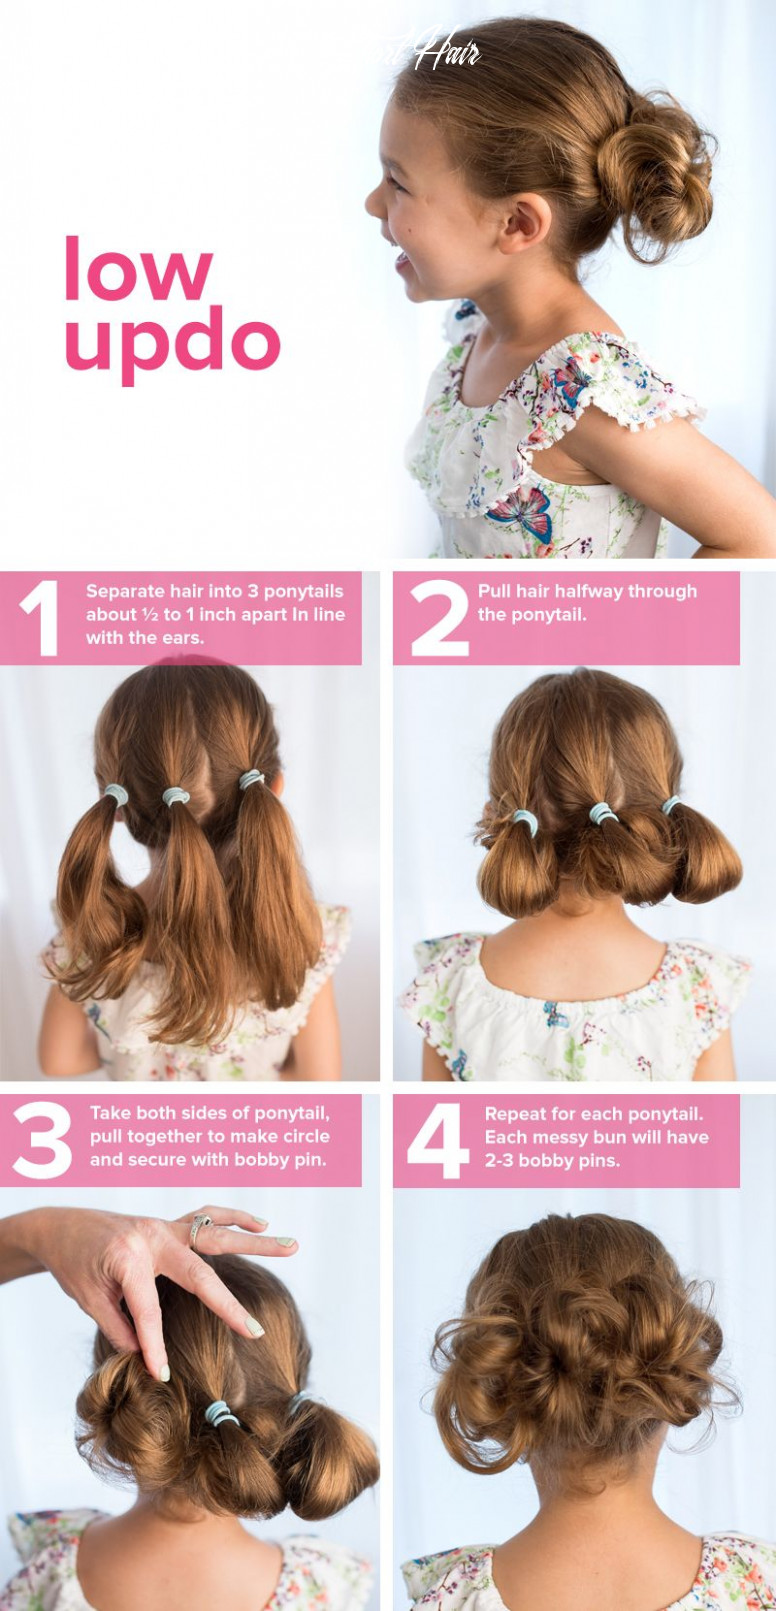 12 easy back to school hairstyles for girls | kids hairstyles, hair